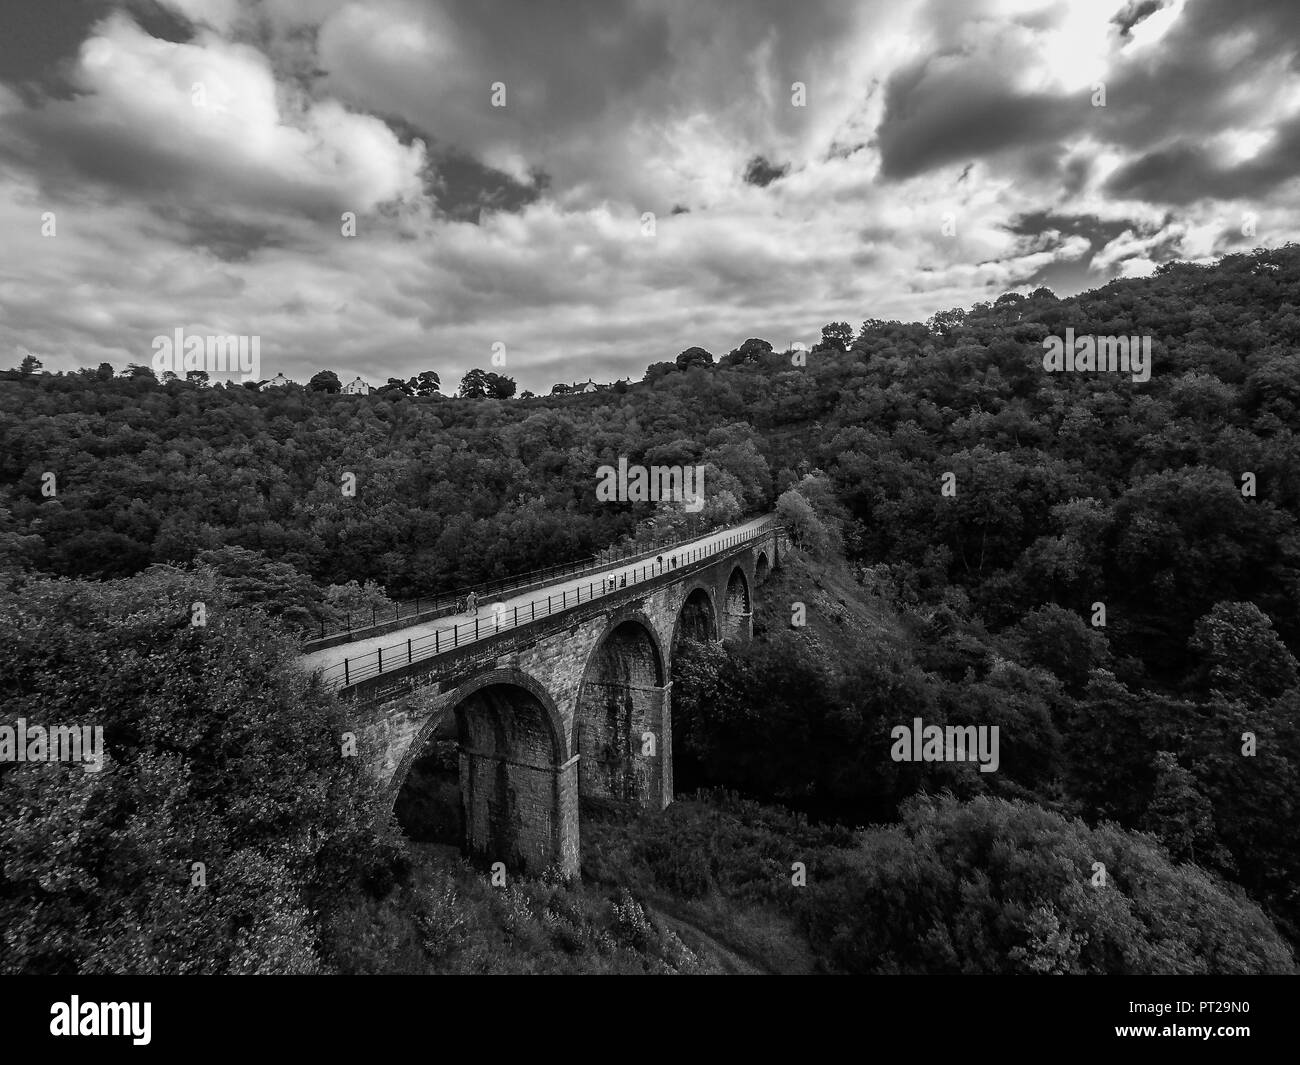 Bakewell, Derbyshire Peak District National Park, the Monsal Trail, Headstone Viaduct, Image 31, Aerial Landscape - Stock Image